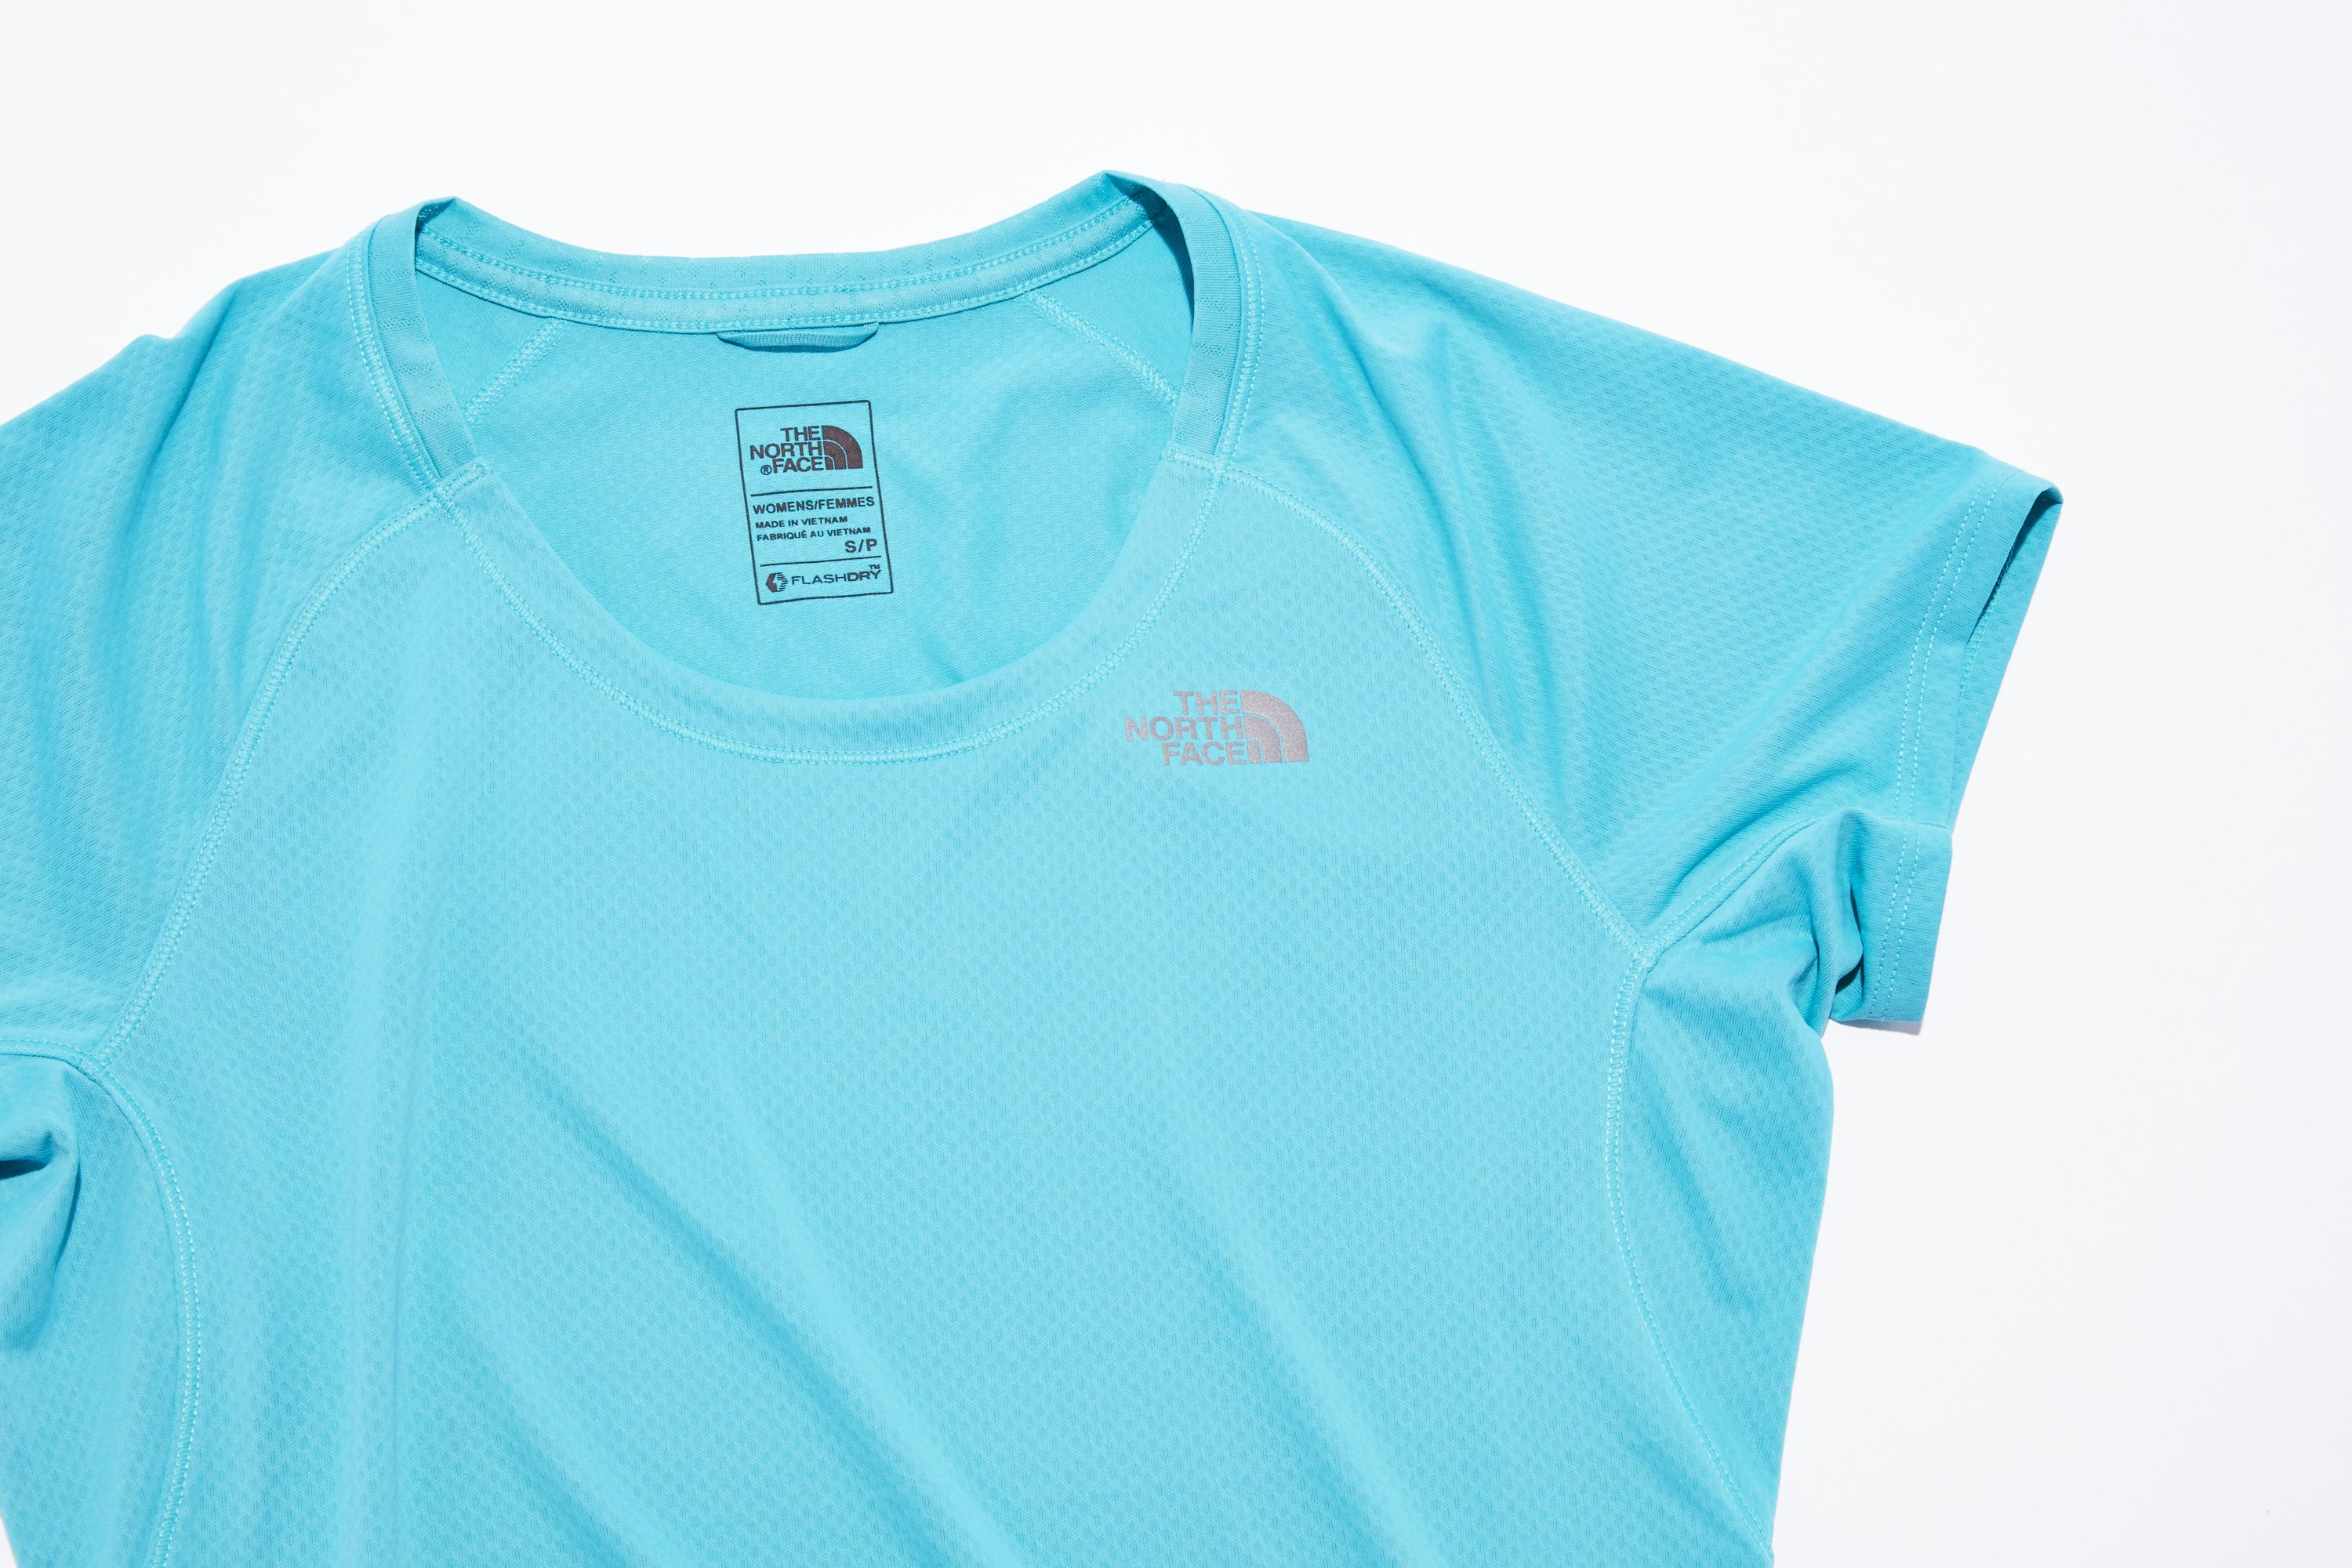 94808af7d9f2 The North Face Better Than Naked Tee